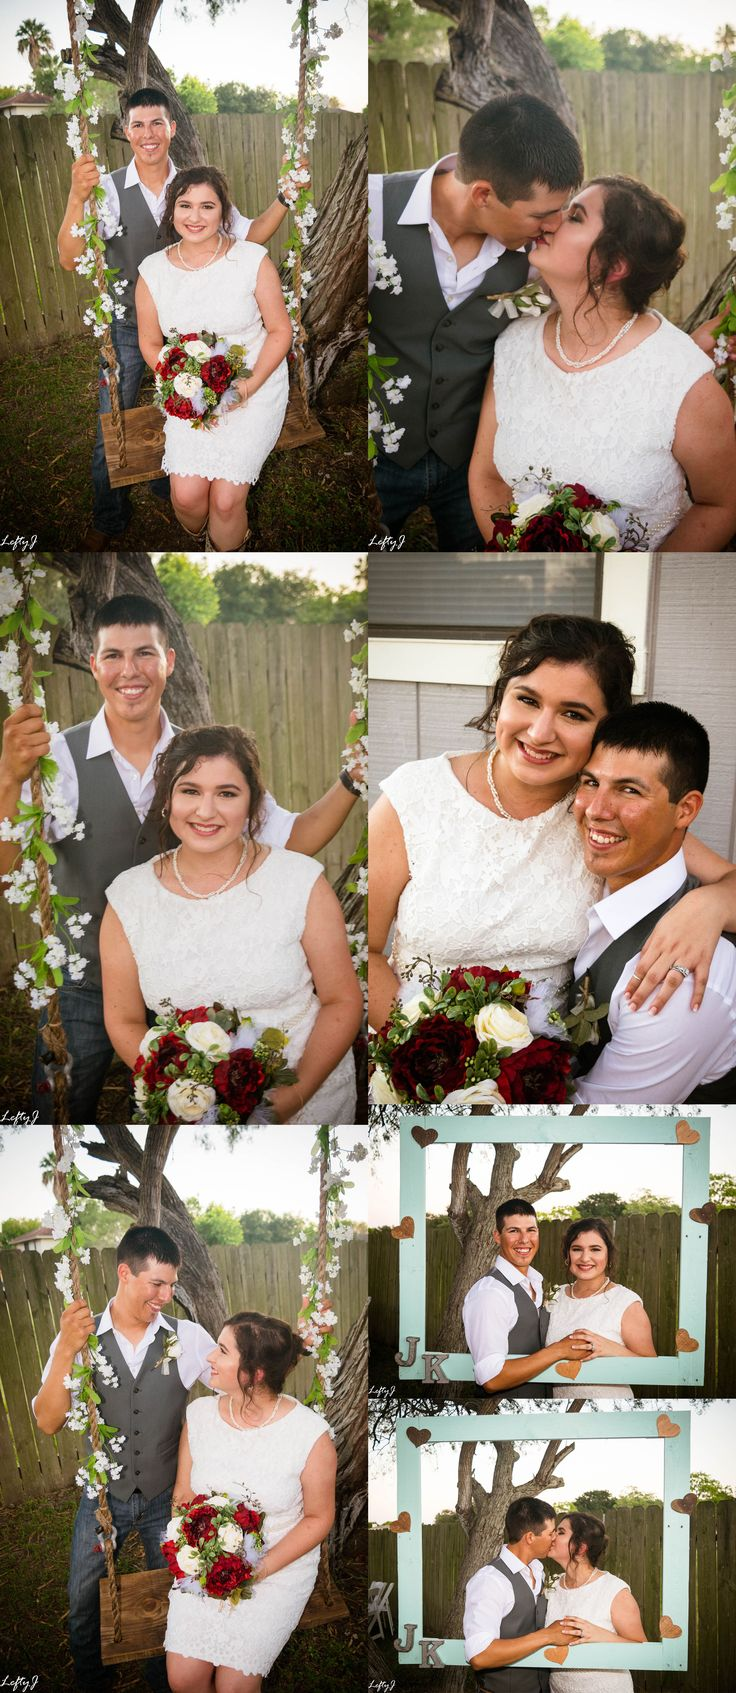 Wedding photography by Lefty J Photography in Corpus Christi, TX #weddingphotos #weddingphotography #weddingphotoshoot #wedding #backyardwedding #corpuschristi #corpuschristiphotography #corpuschristiphotographer #fallwedding #octoberwedding